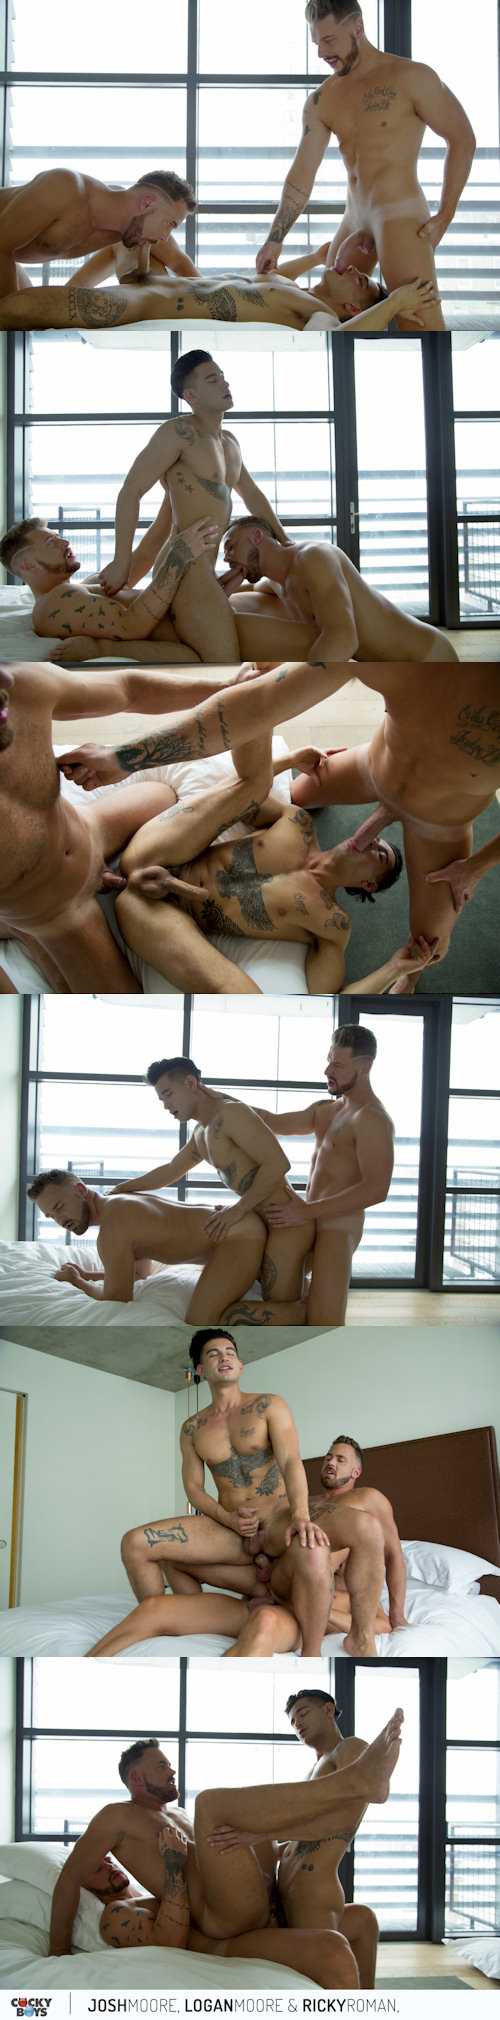 cockyboys-ricky-jpsh-logan-2.jpg